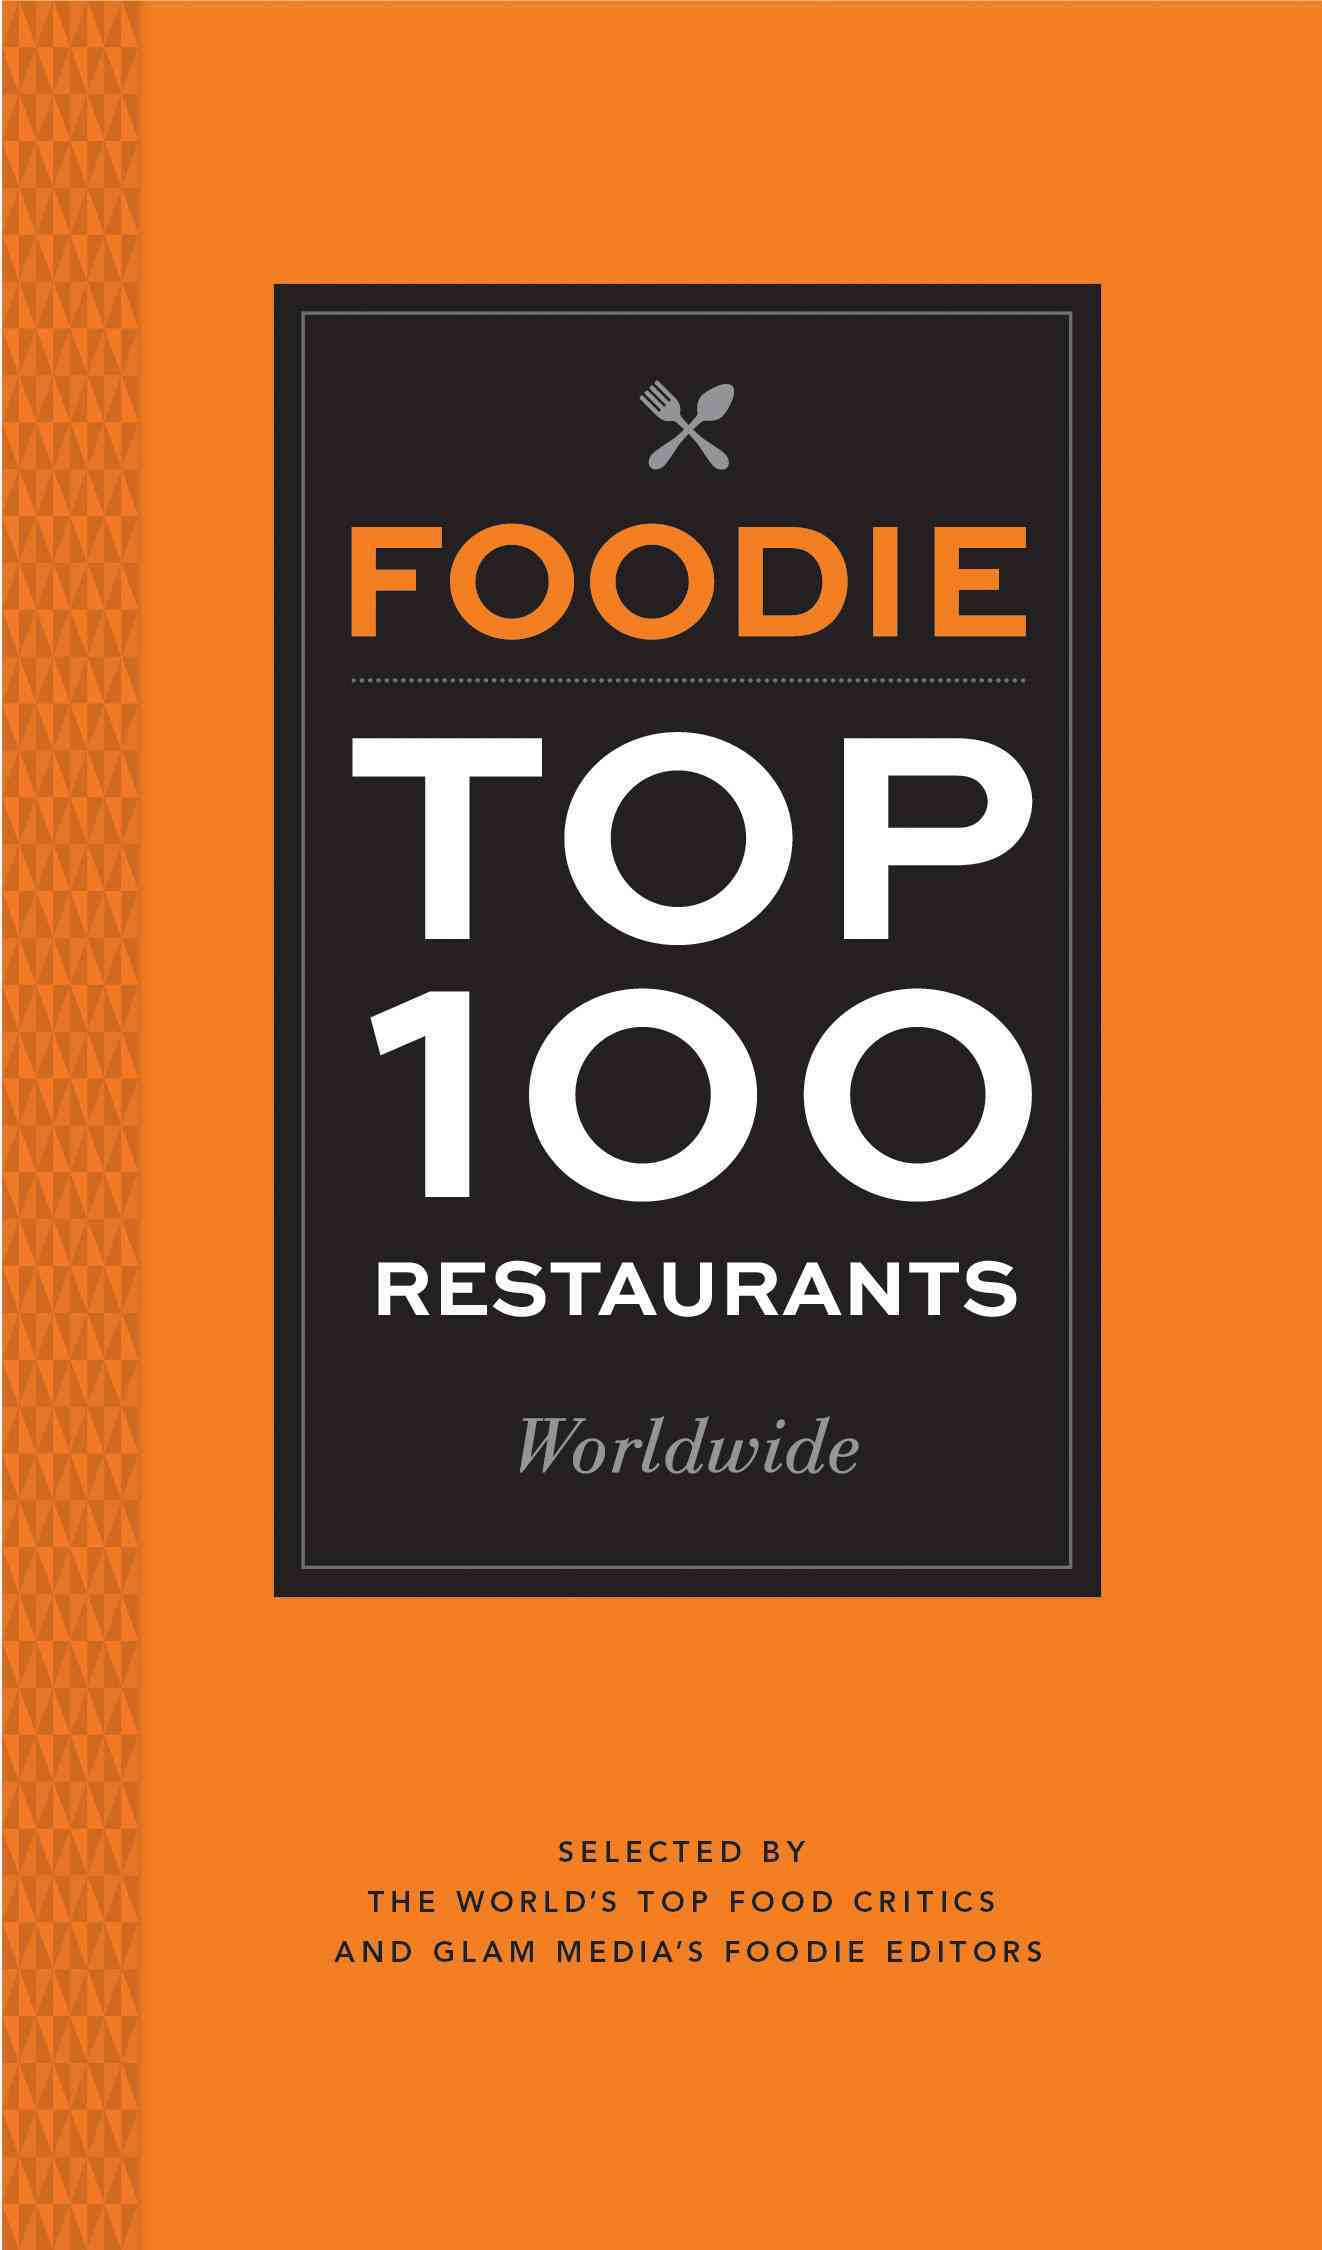 Foodie Top 100 Restaurants Worldwide By Glam Media (COR)